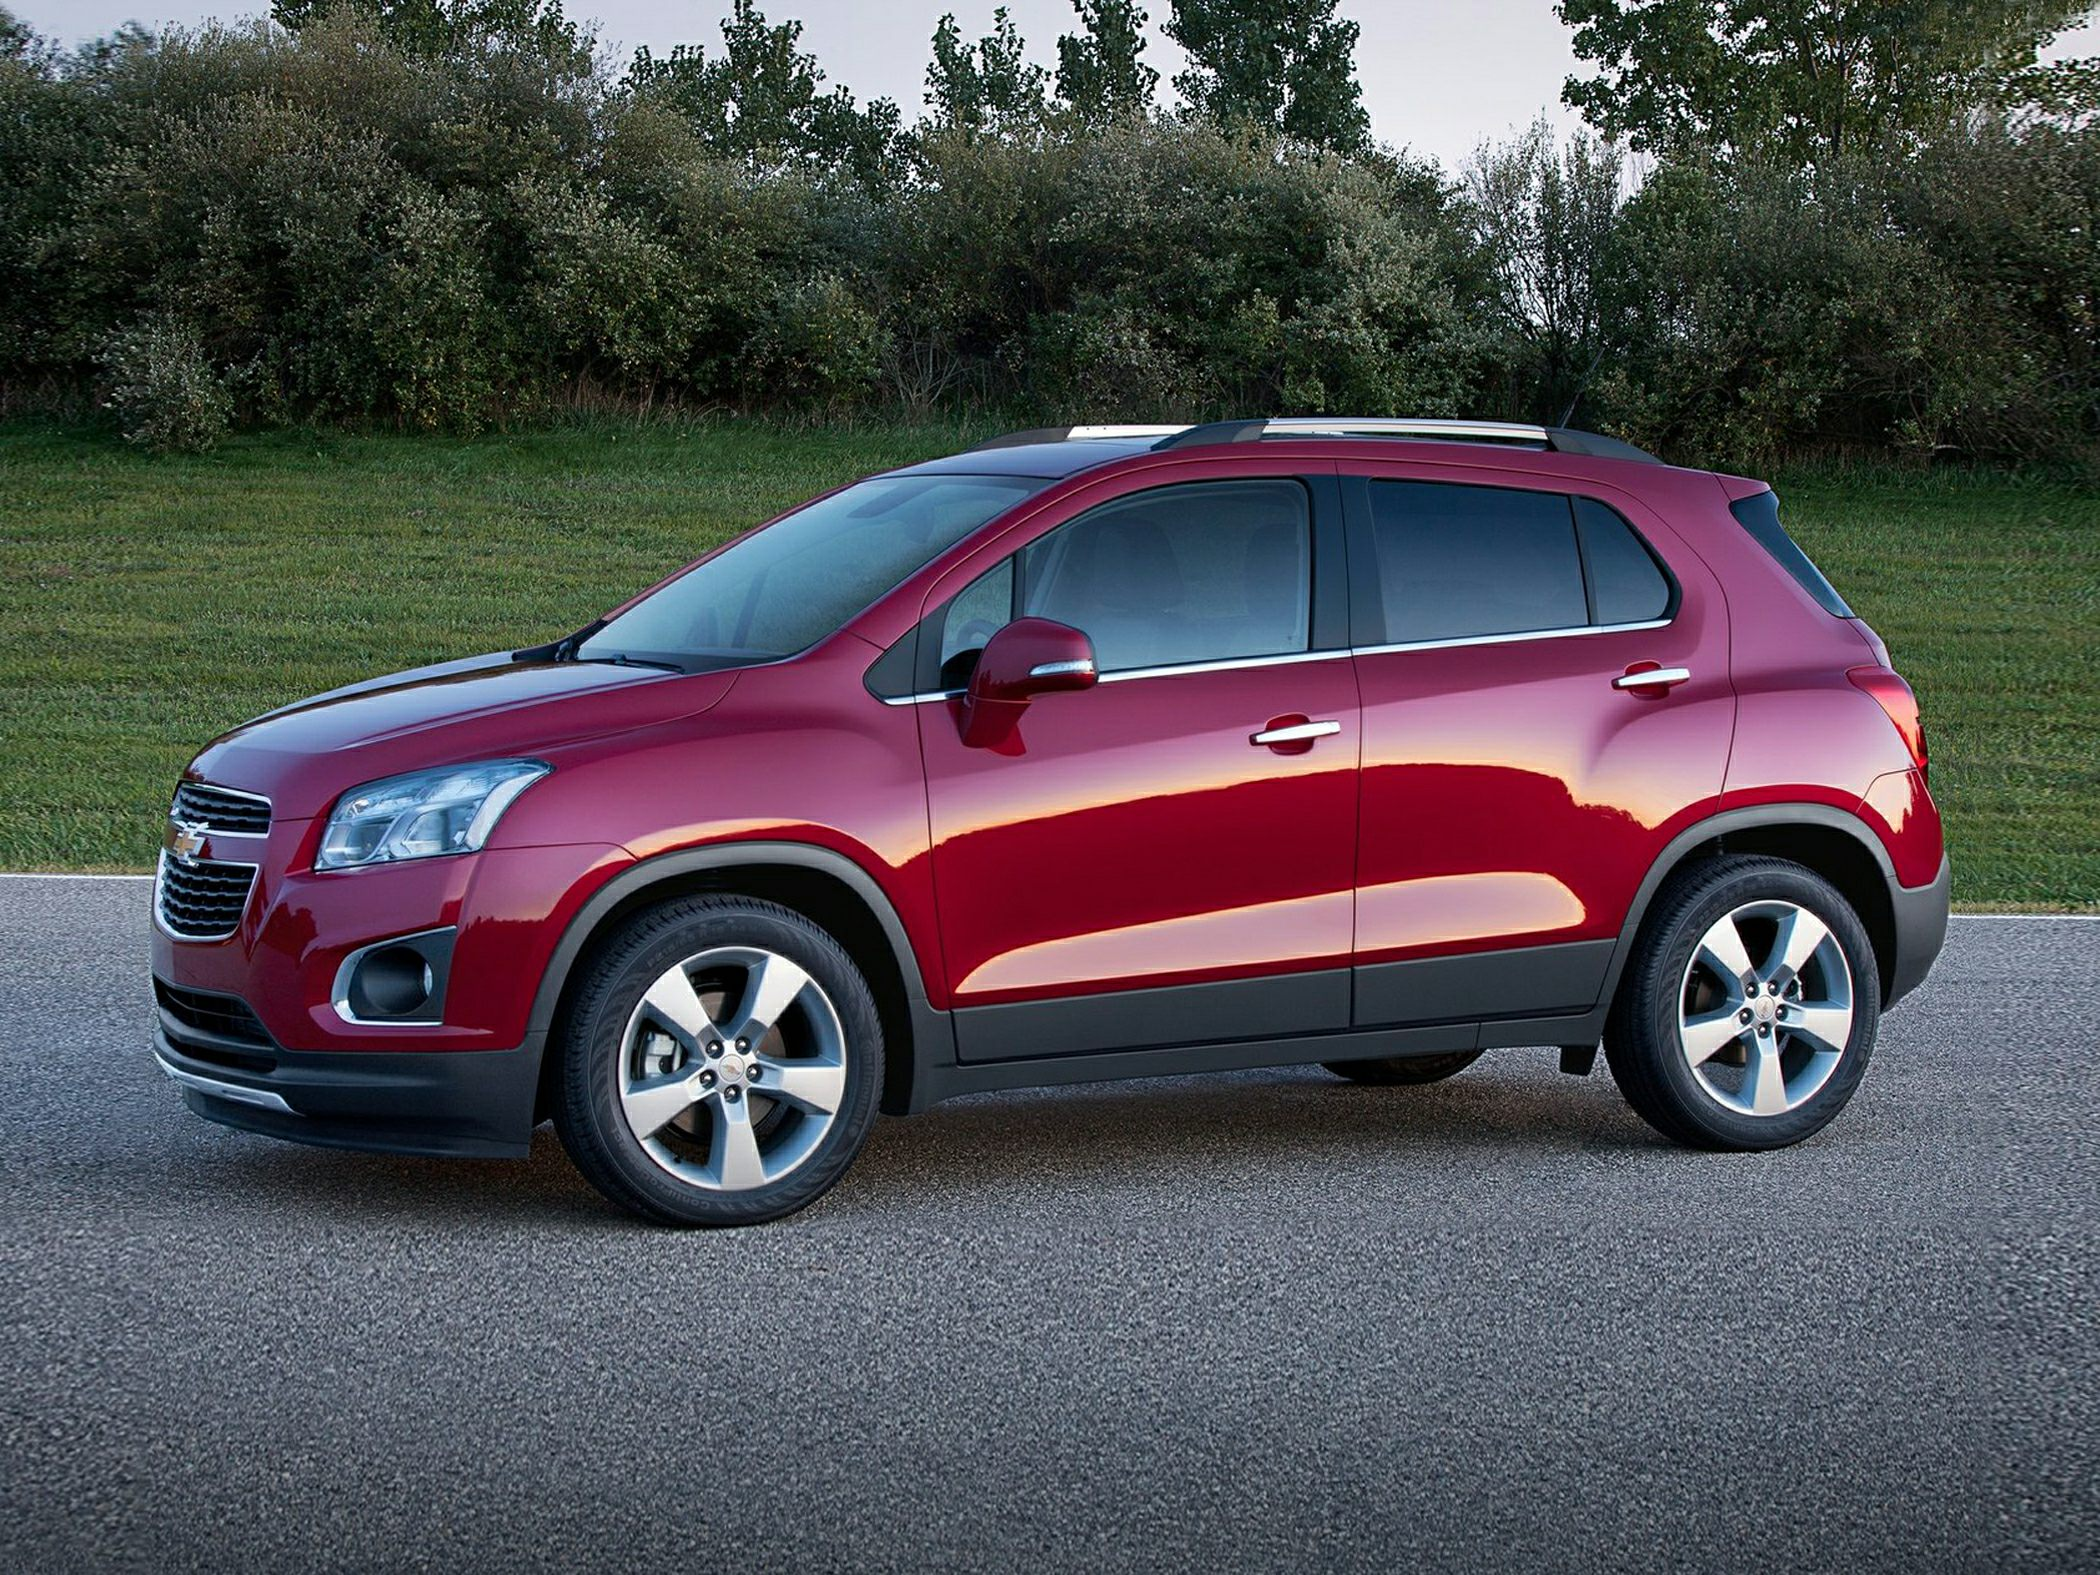 2017 chevrolet trax deals prices incentives leases overview carsdirect. Black Bedroom Furniture Sets. Home Design Ideas